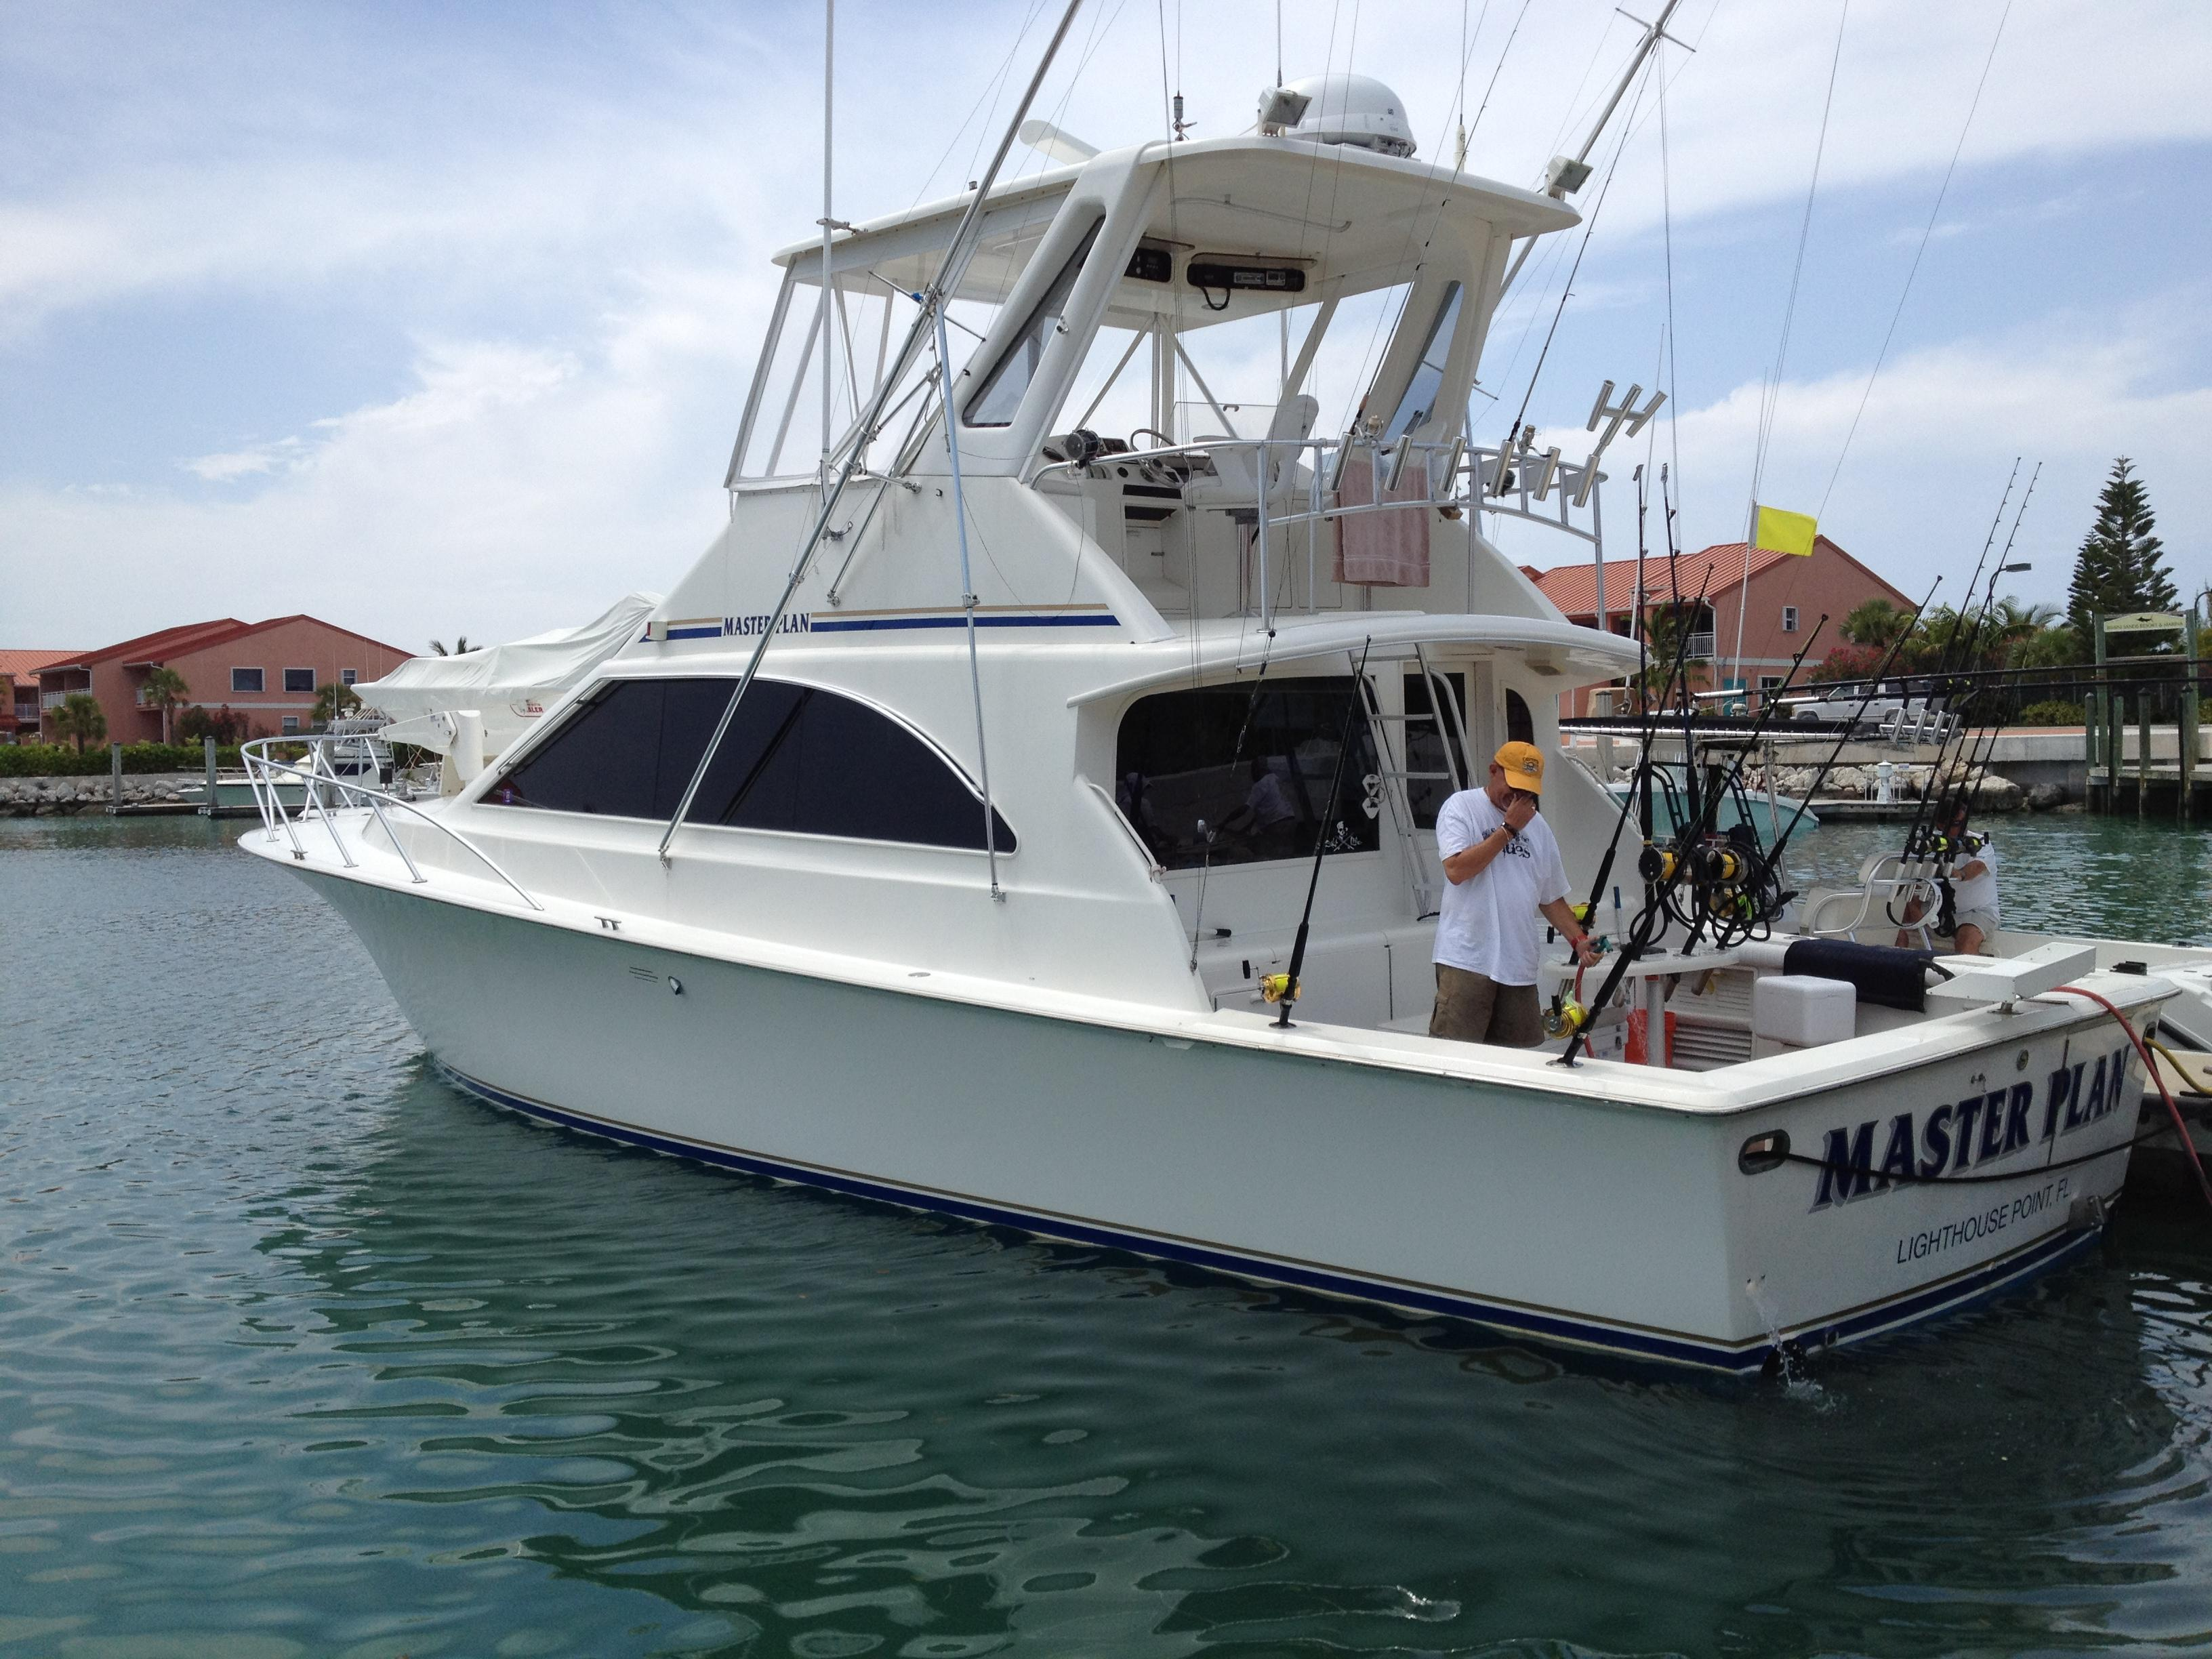 48 ocean 1997 master plan for sale in lighthouse point for Ocean yachts 48 motor yacht for sale